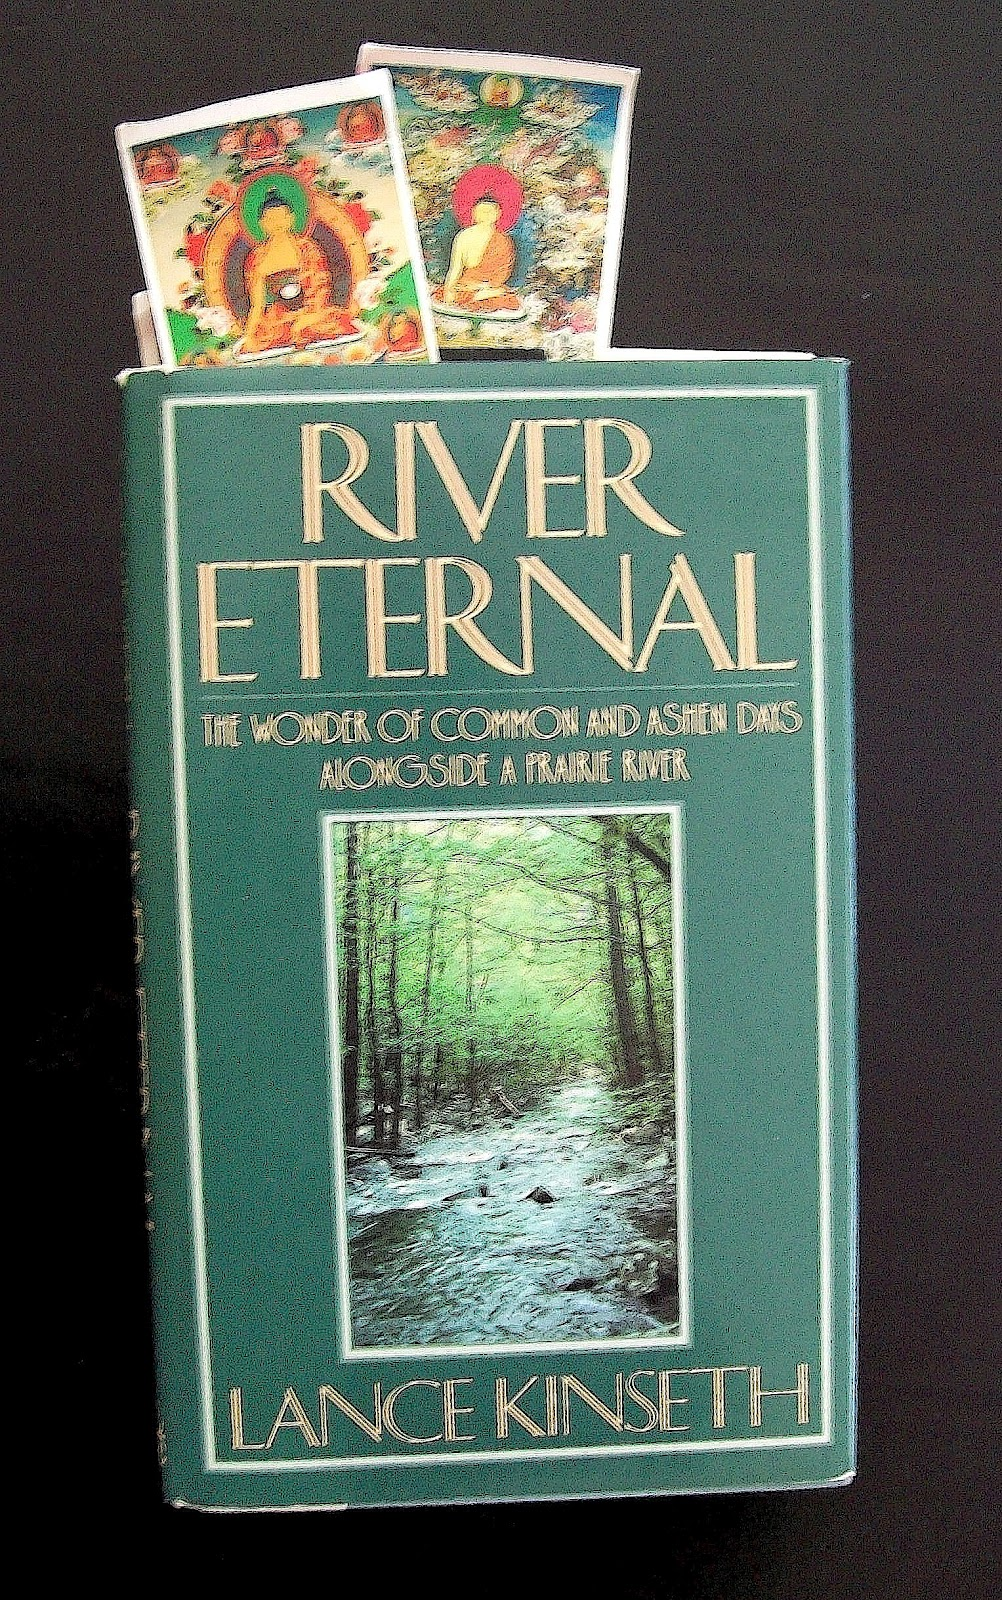 River Eternal (Viking, 1989)